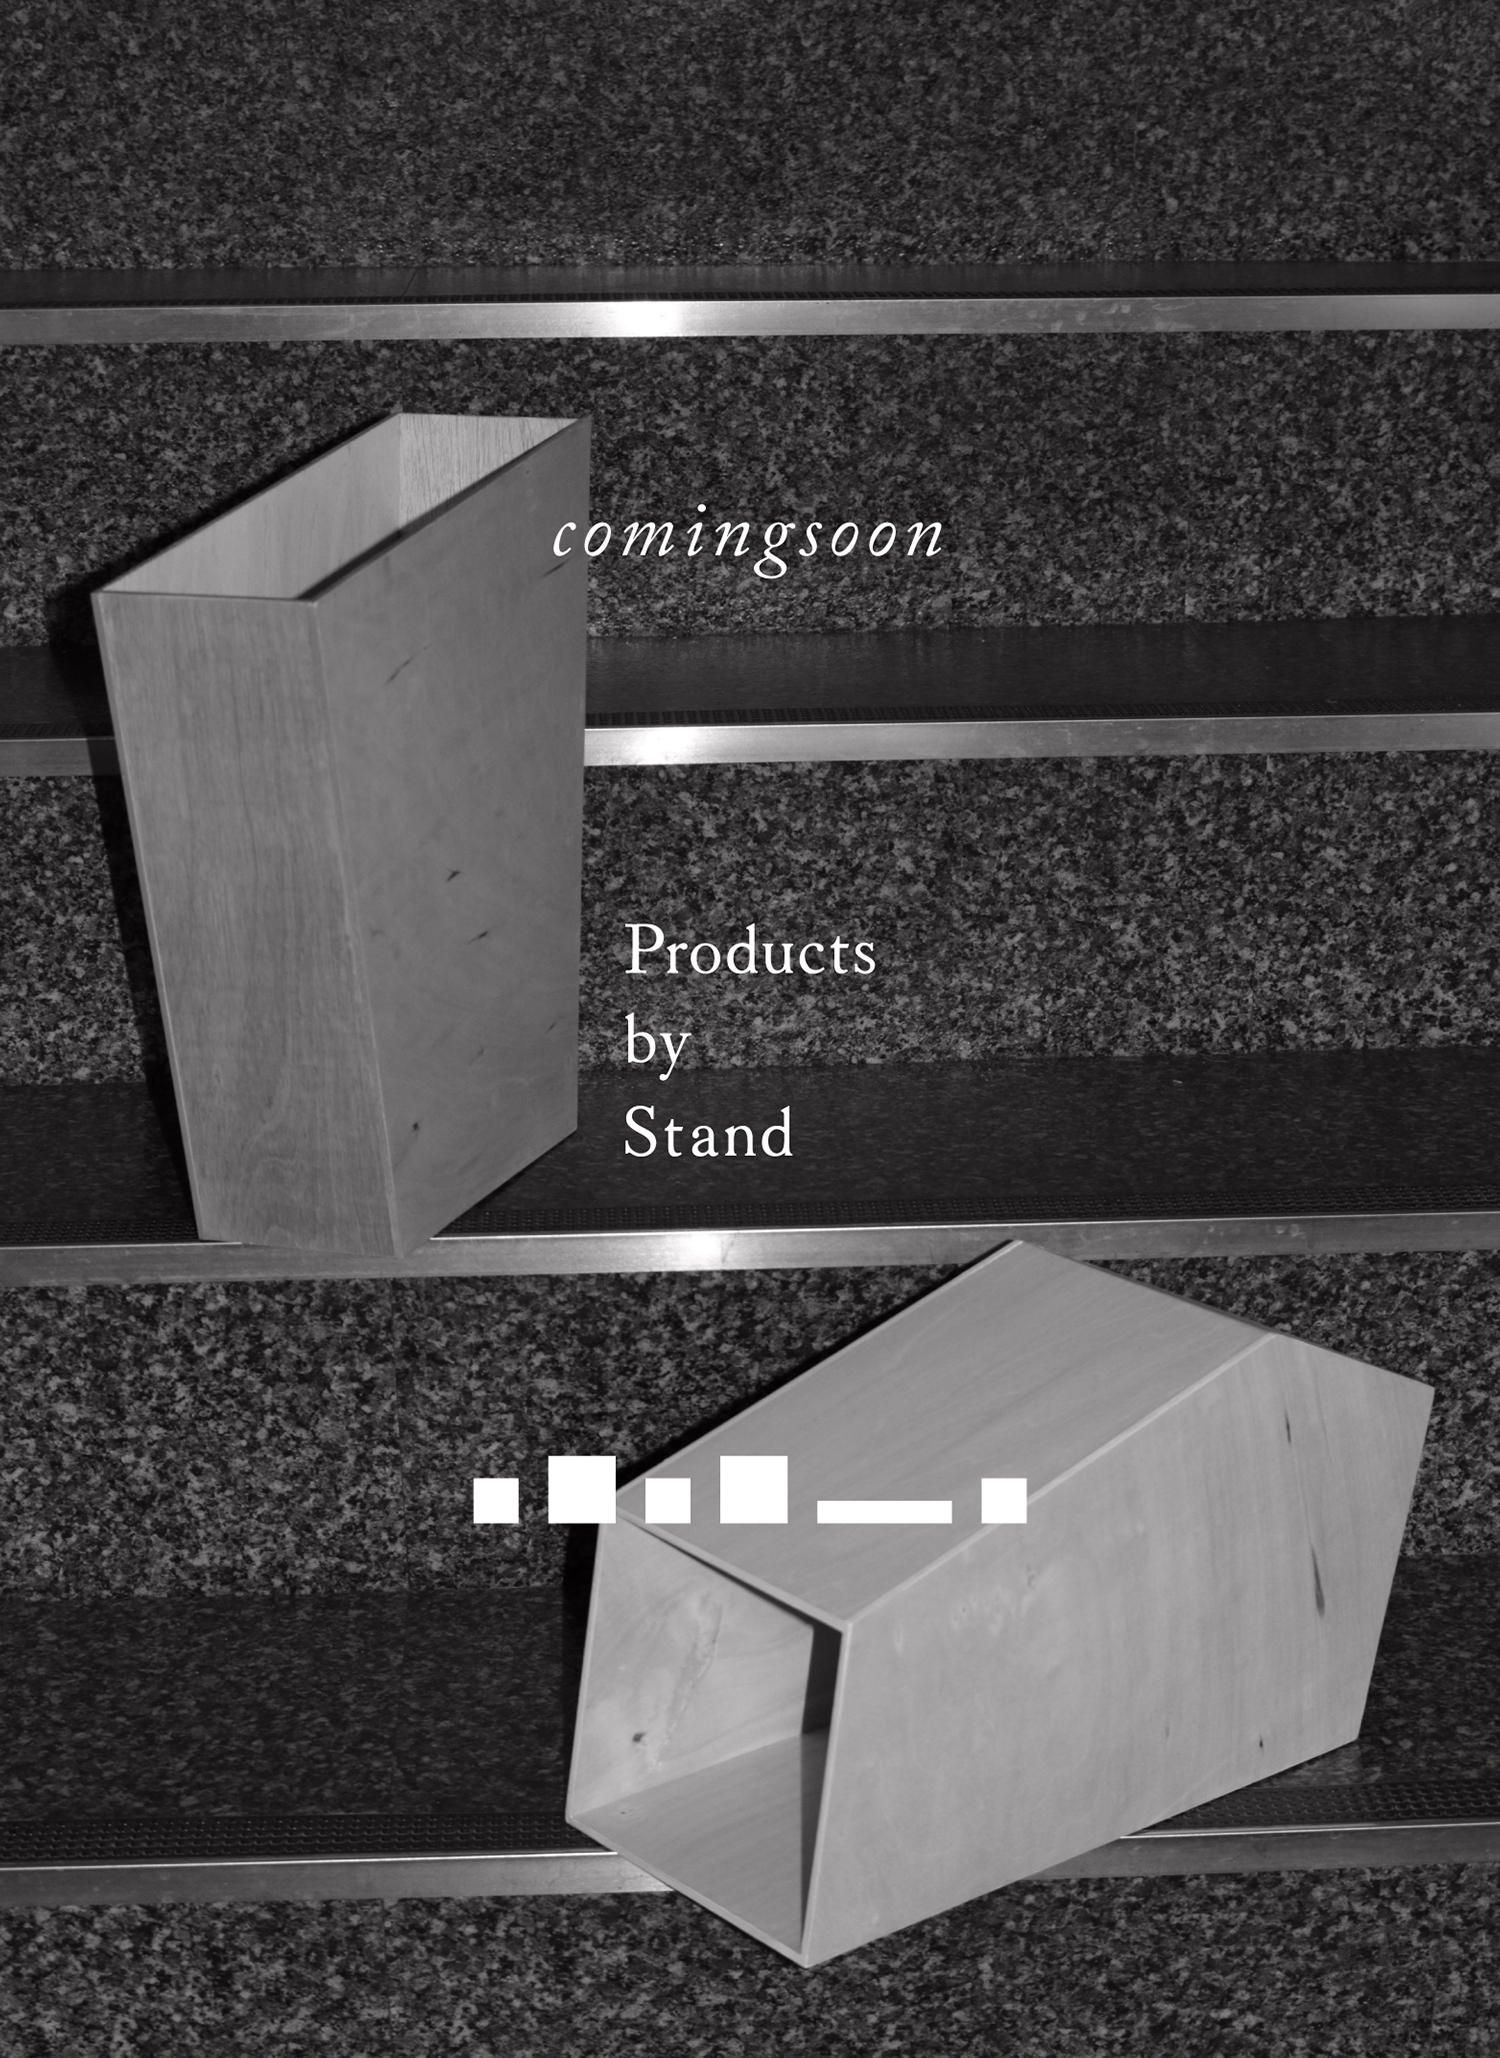 Products by Stand